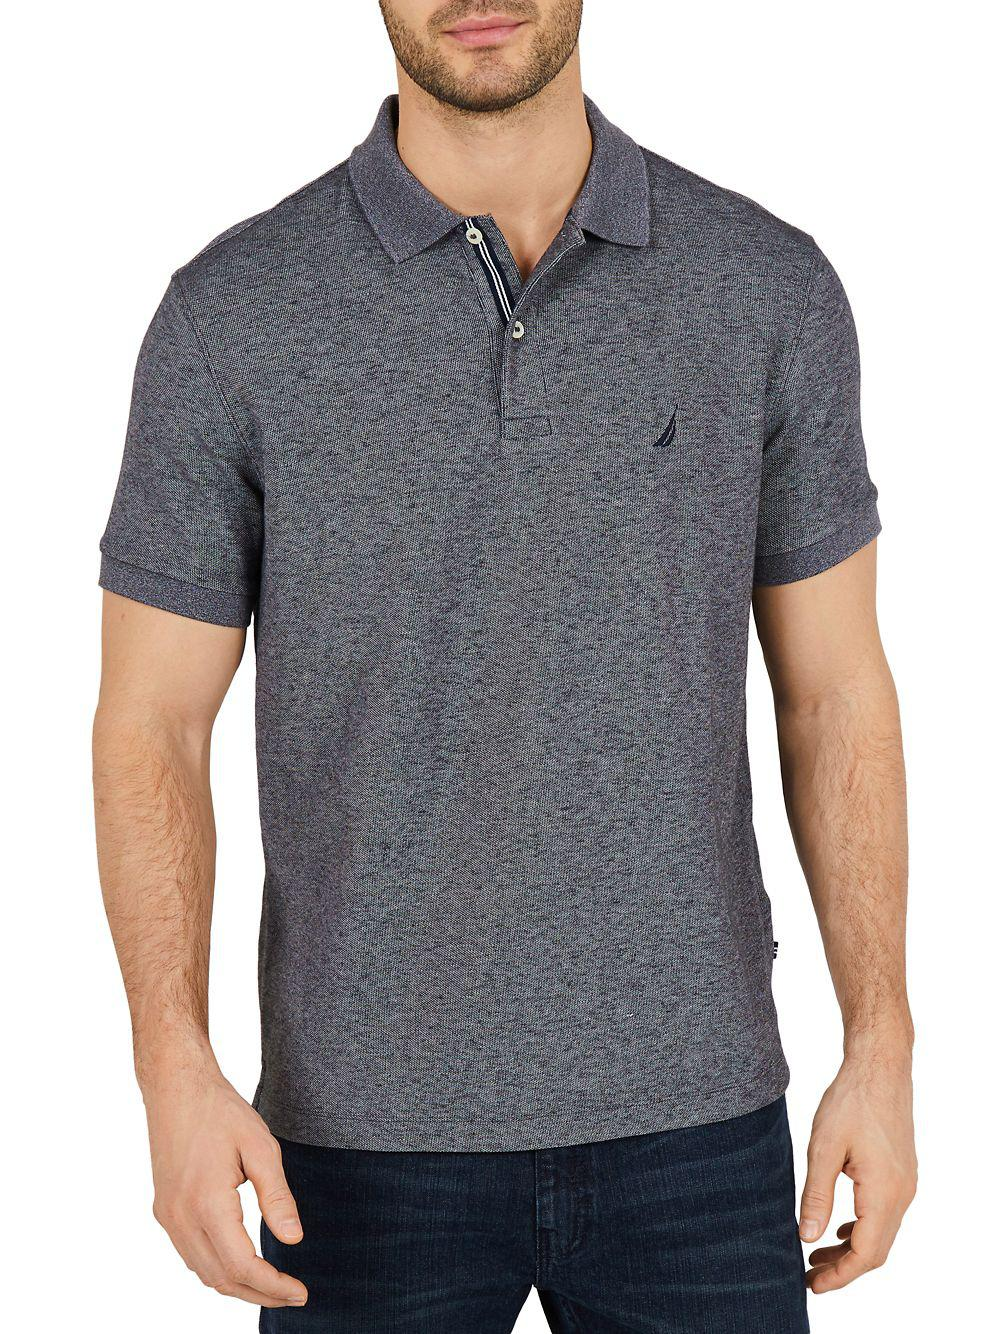 Lyst Nautica Classic Fit Moisture Wicking Polo Shirt In Gray For Men